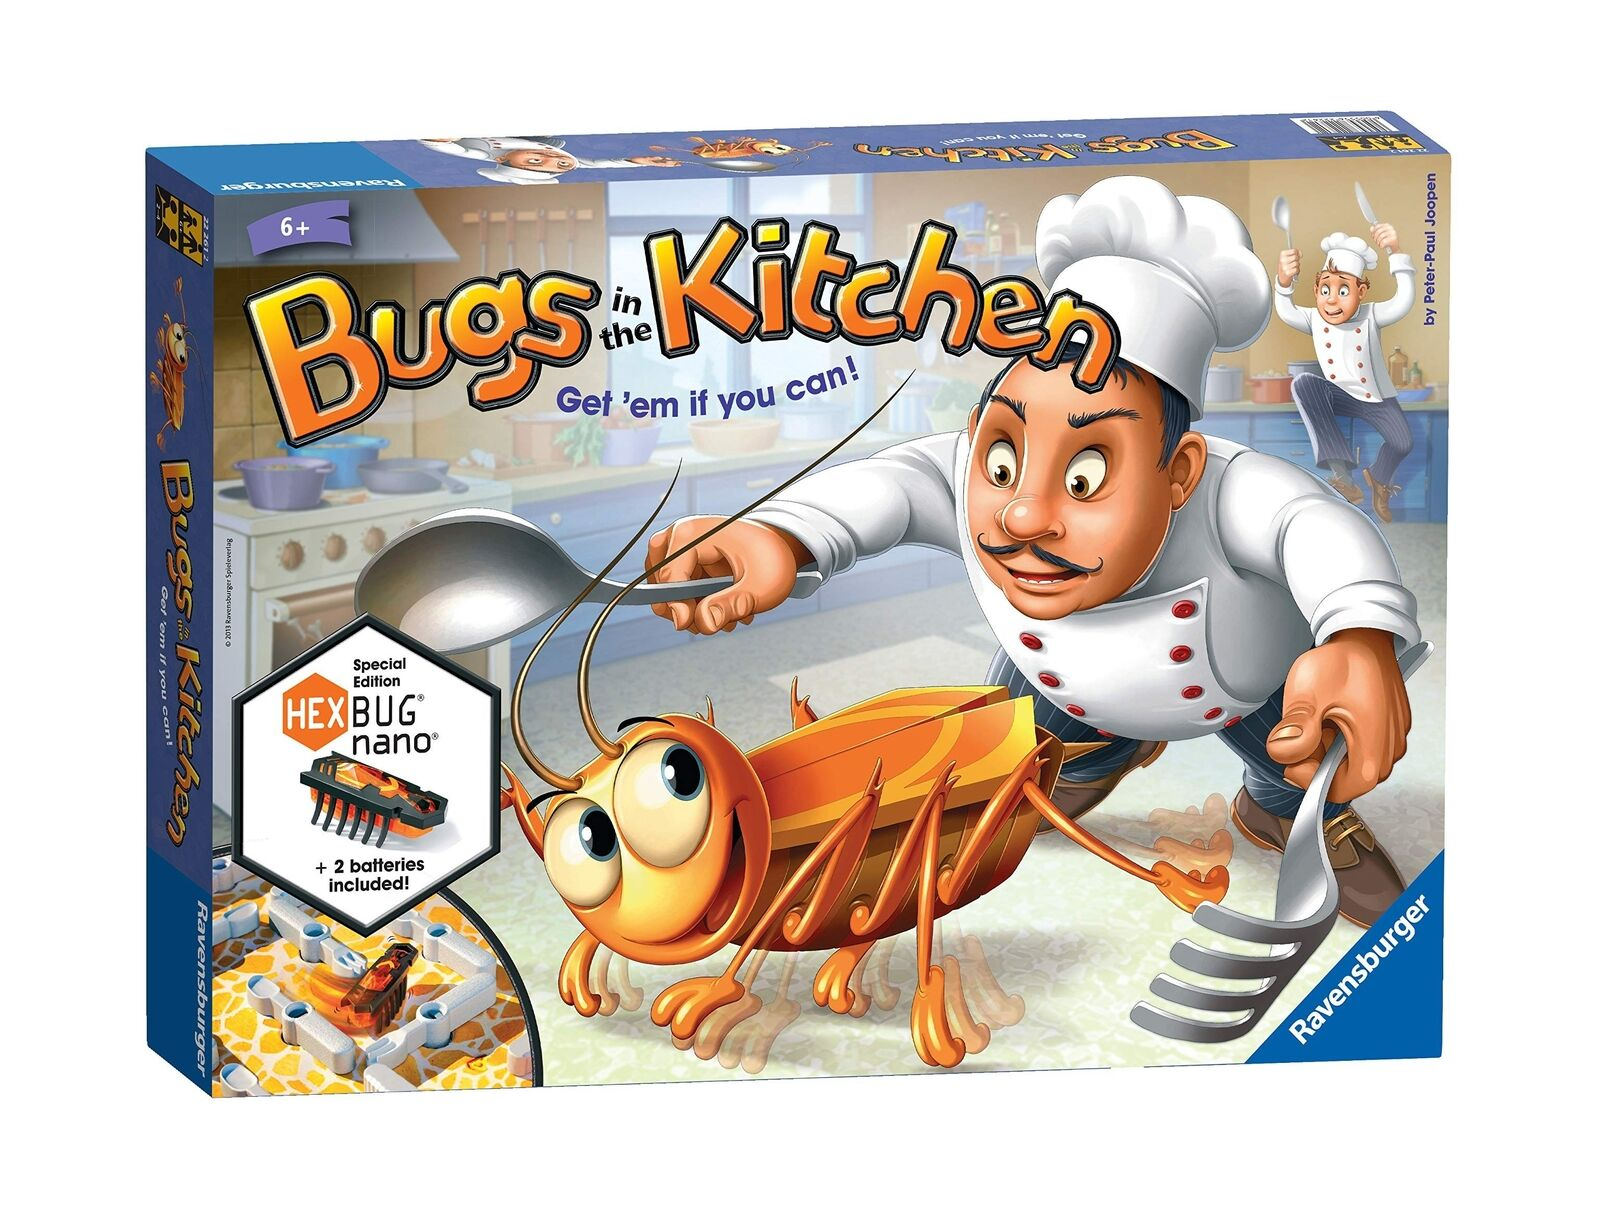 Bugs in the Kitchen - Children's Board Game,Easy to learn